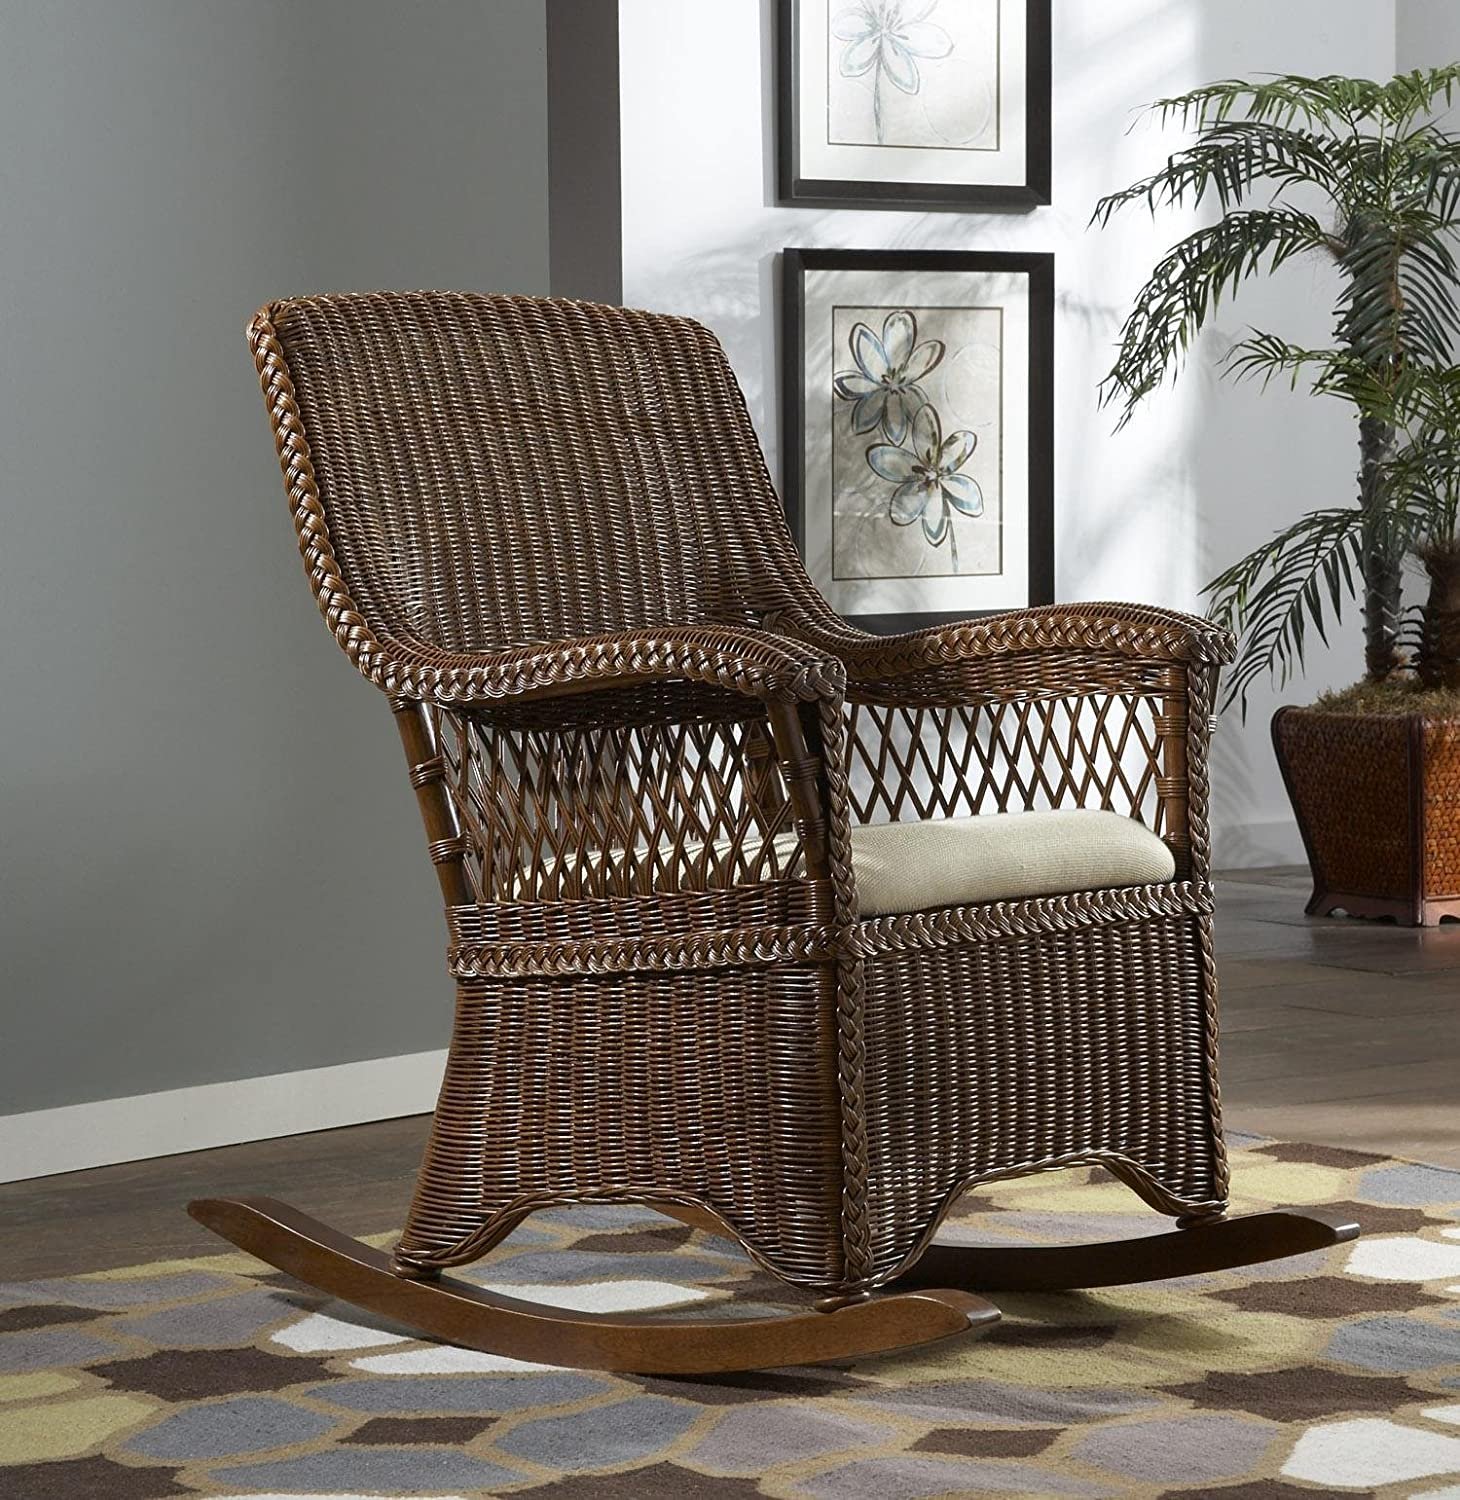 Amazon Wicker Indoor Rocking Chair with Cushion Baby